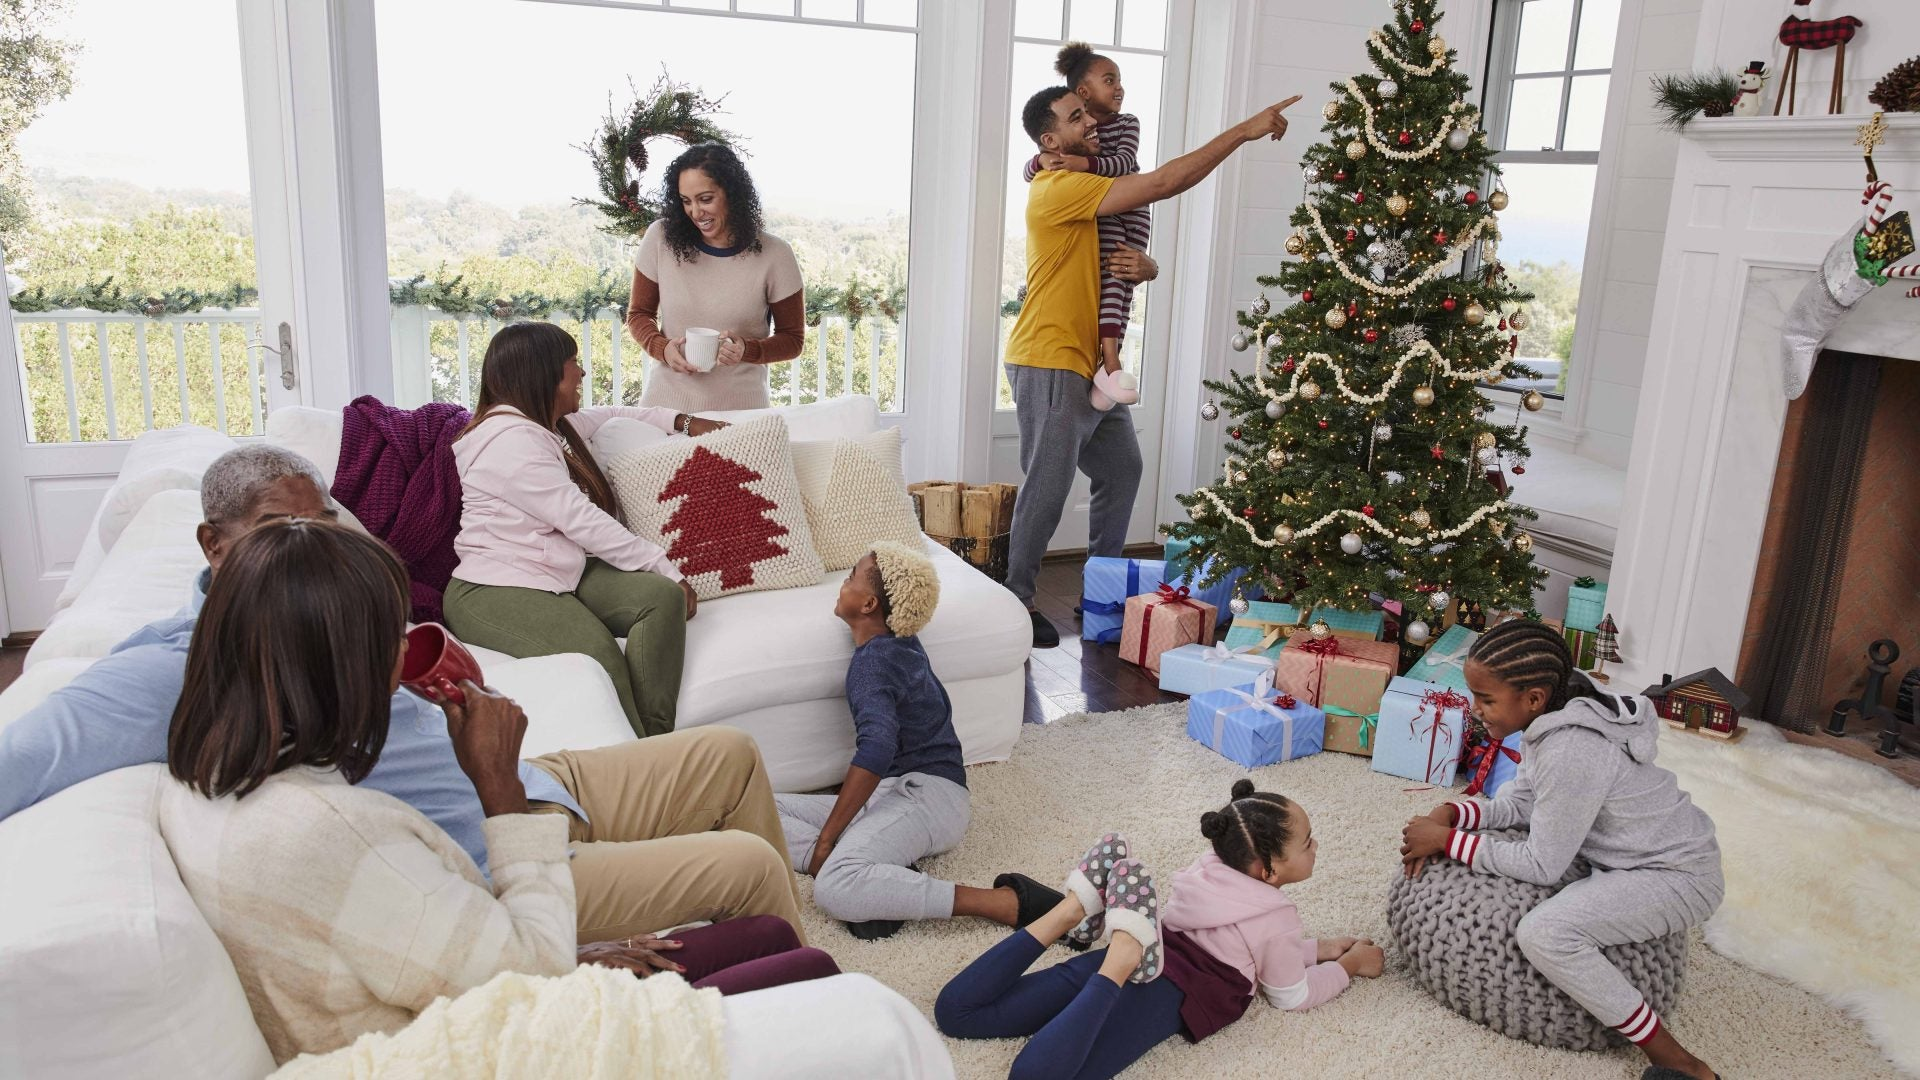 Epic Ideas for Getting Ready for the Holidays